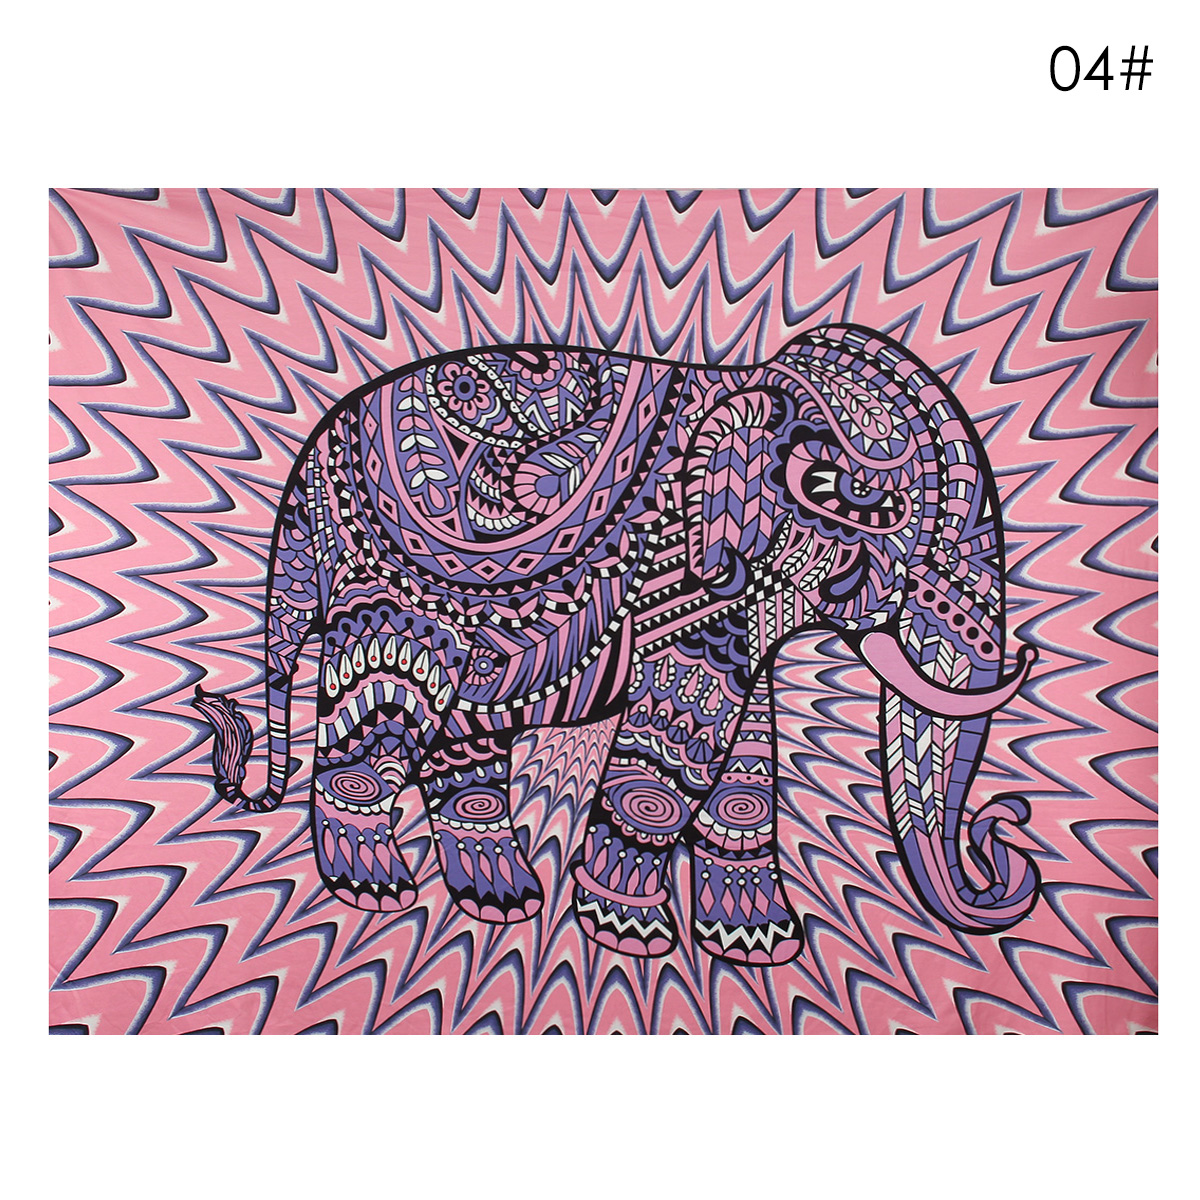 Elephant Mandala Tapestry Throw Towel Hippie Tapestry Floral Printed Home Decor Wall Tapestries Bedspread 210*150CM 15